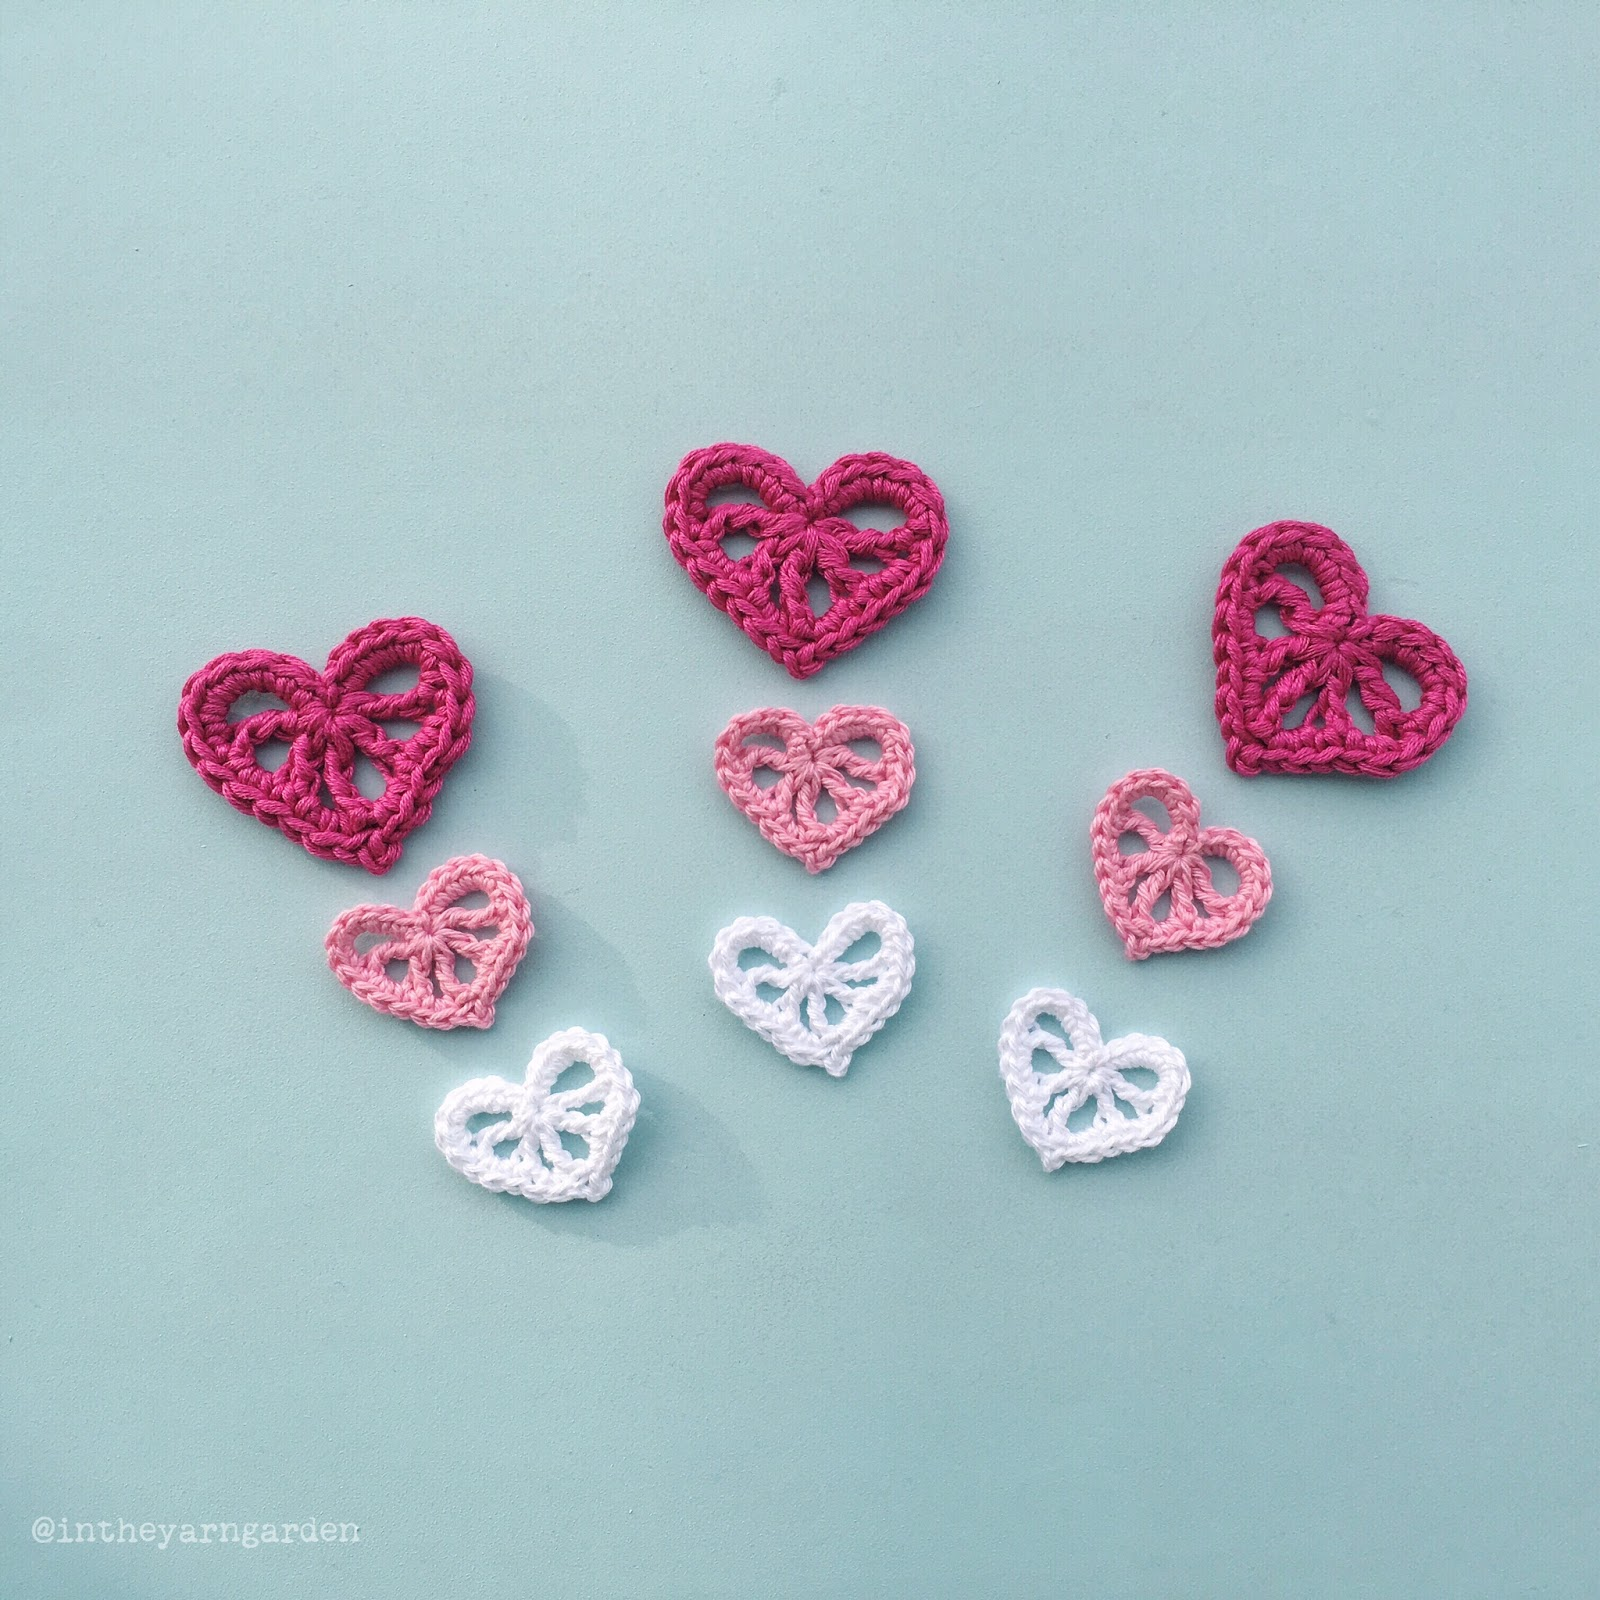 Crochet Stitches Decorative : Decorative crochet hearts